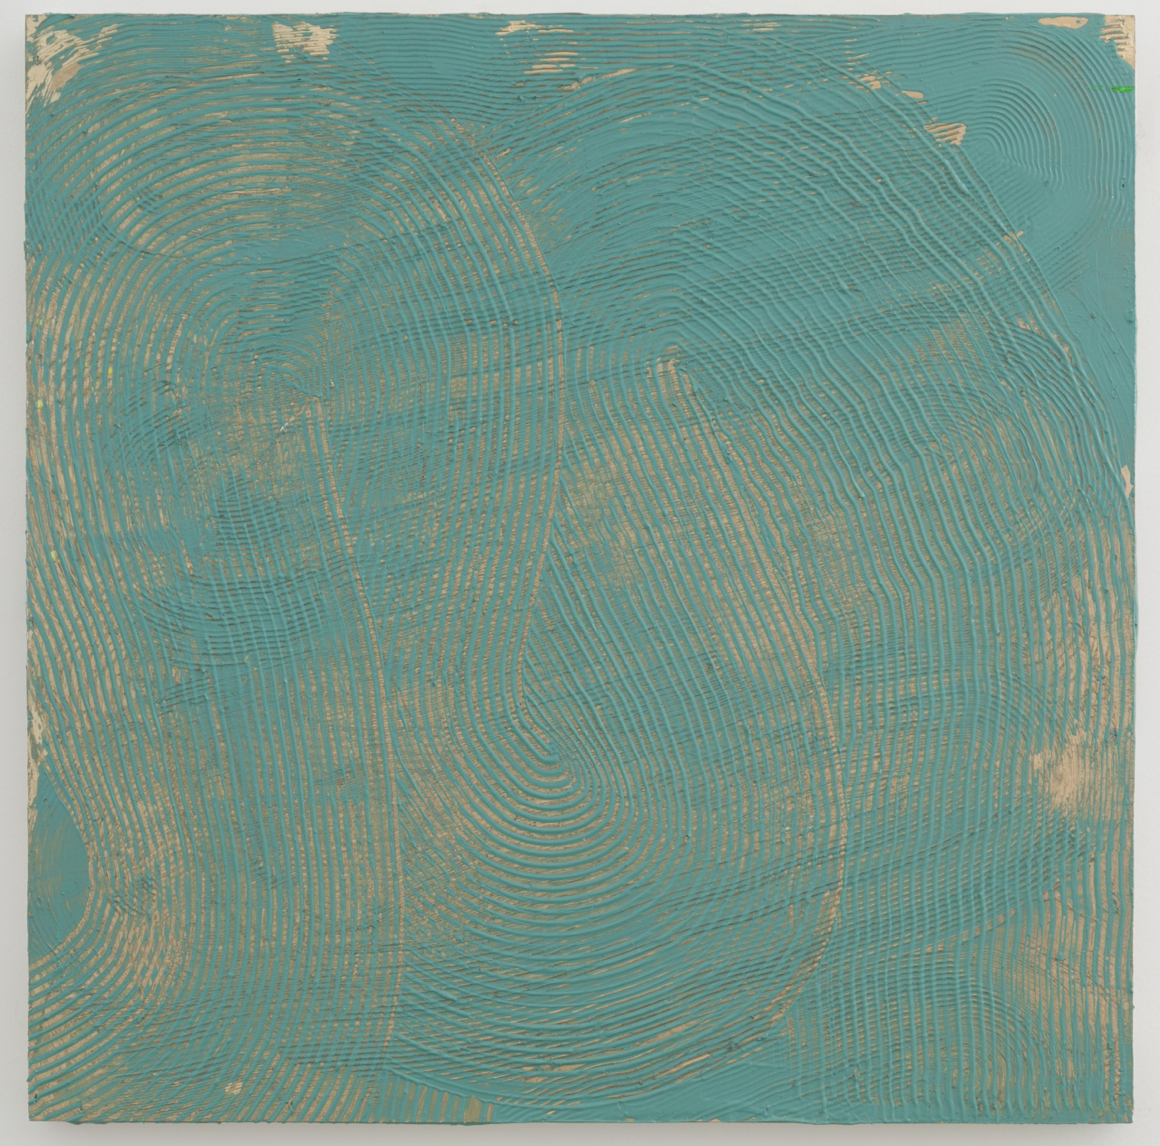 "<p><span class=""name"">Adam Bateman</span><br><em>Blue and Gold</em><span class='media'>acrylic and spray paint on panel</span>24 x 24in<br>2014<br><a class='inquire' href='mailto:info@gildargallery.com?subject=Artwork Inquiry ABAT0002&body=I am interested in finding out more about Blue and Gold by Adam Bateman'>Inquire</a></p>"